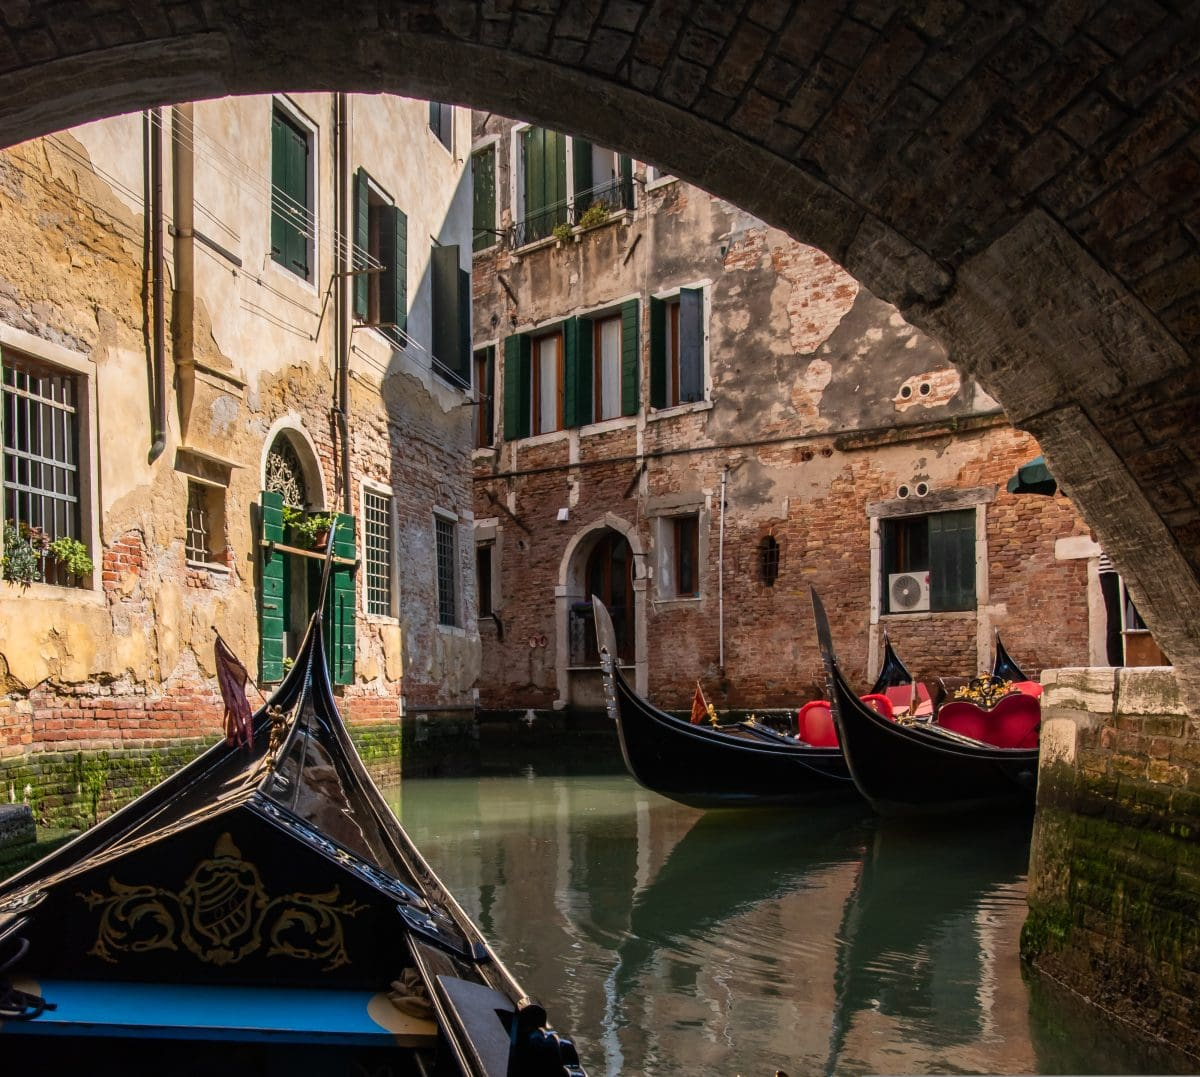 PhotoPOSTcard: Venice From a Gondola's Perspective